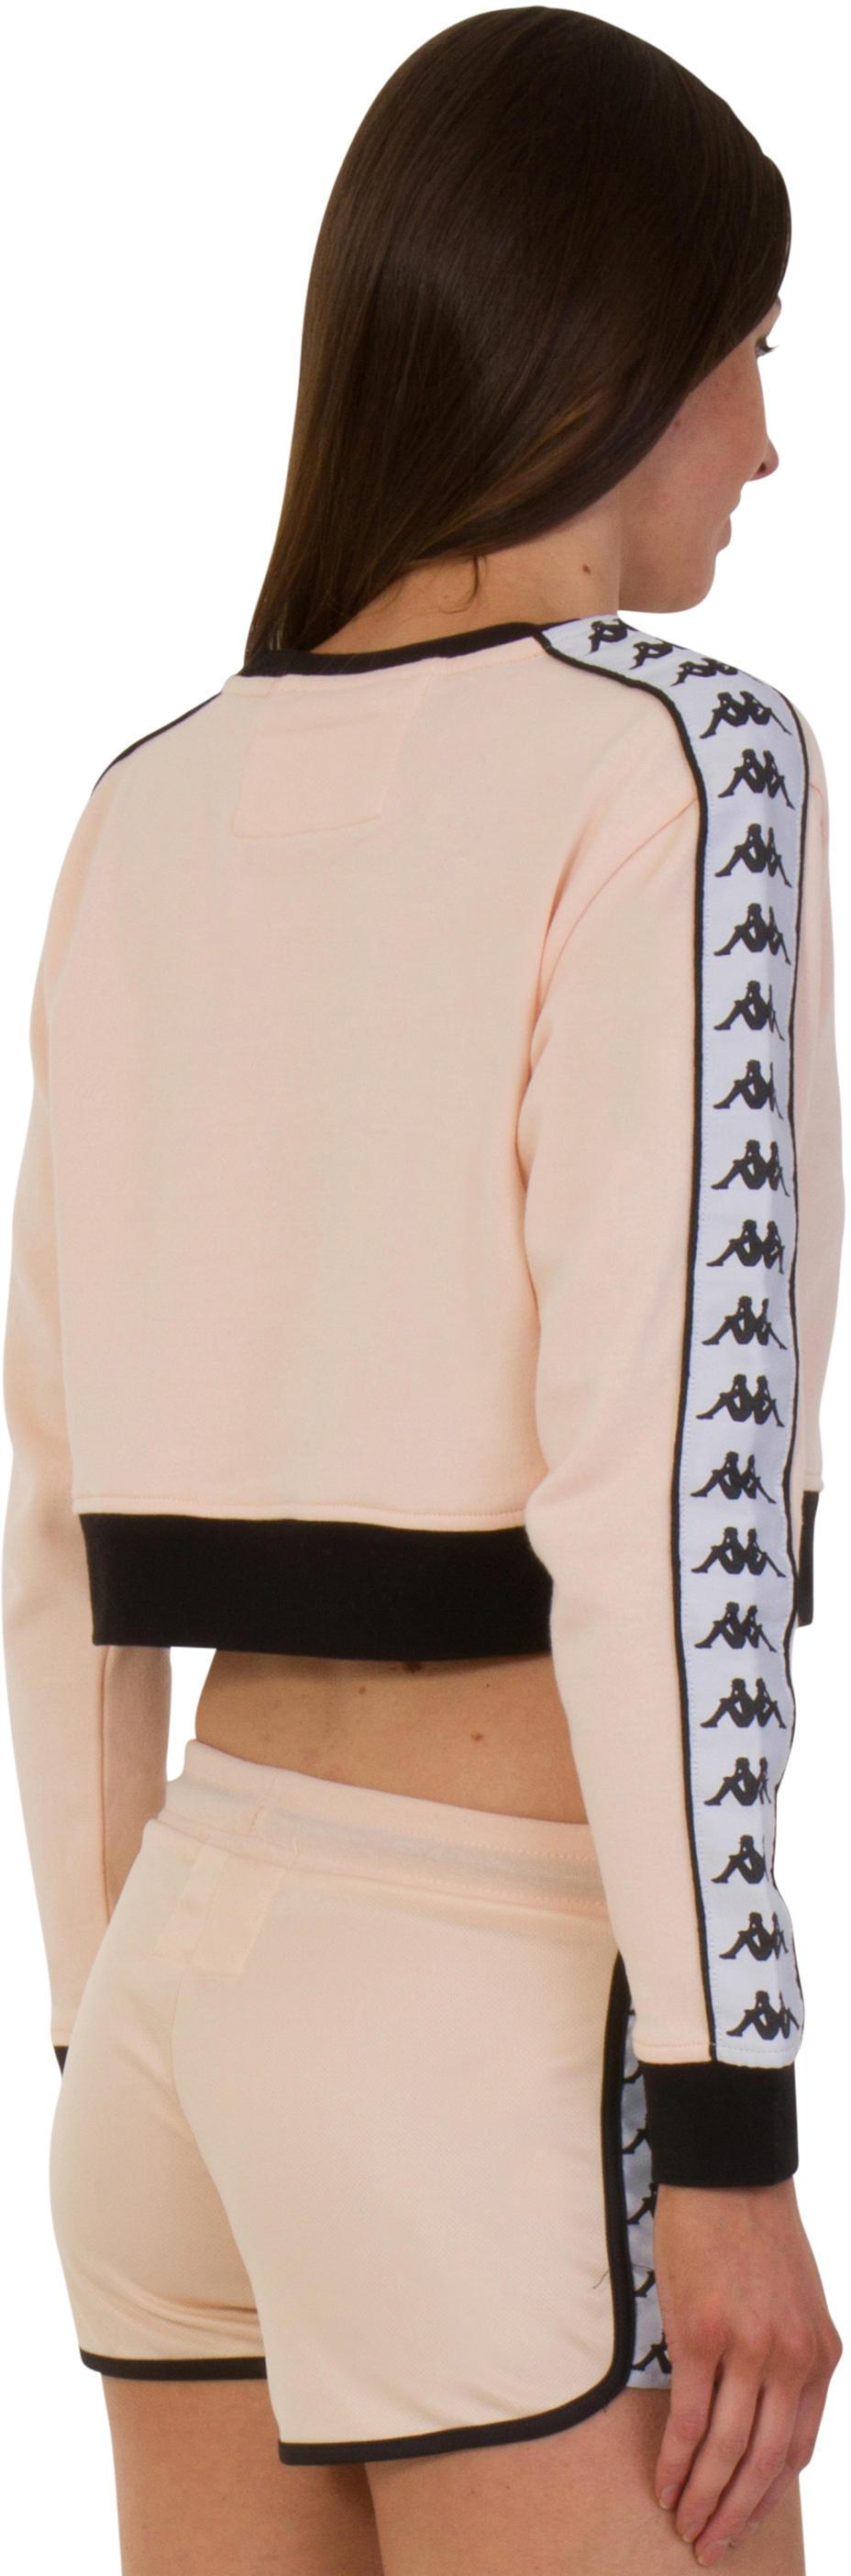 Kappa AYS Cropped Sweatshirt Peach